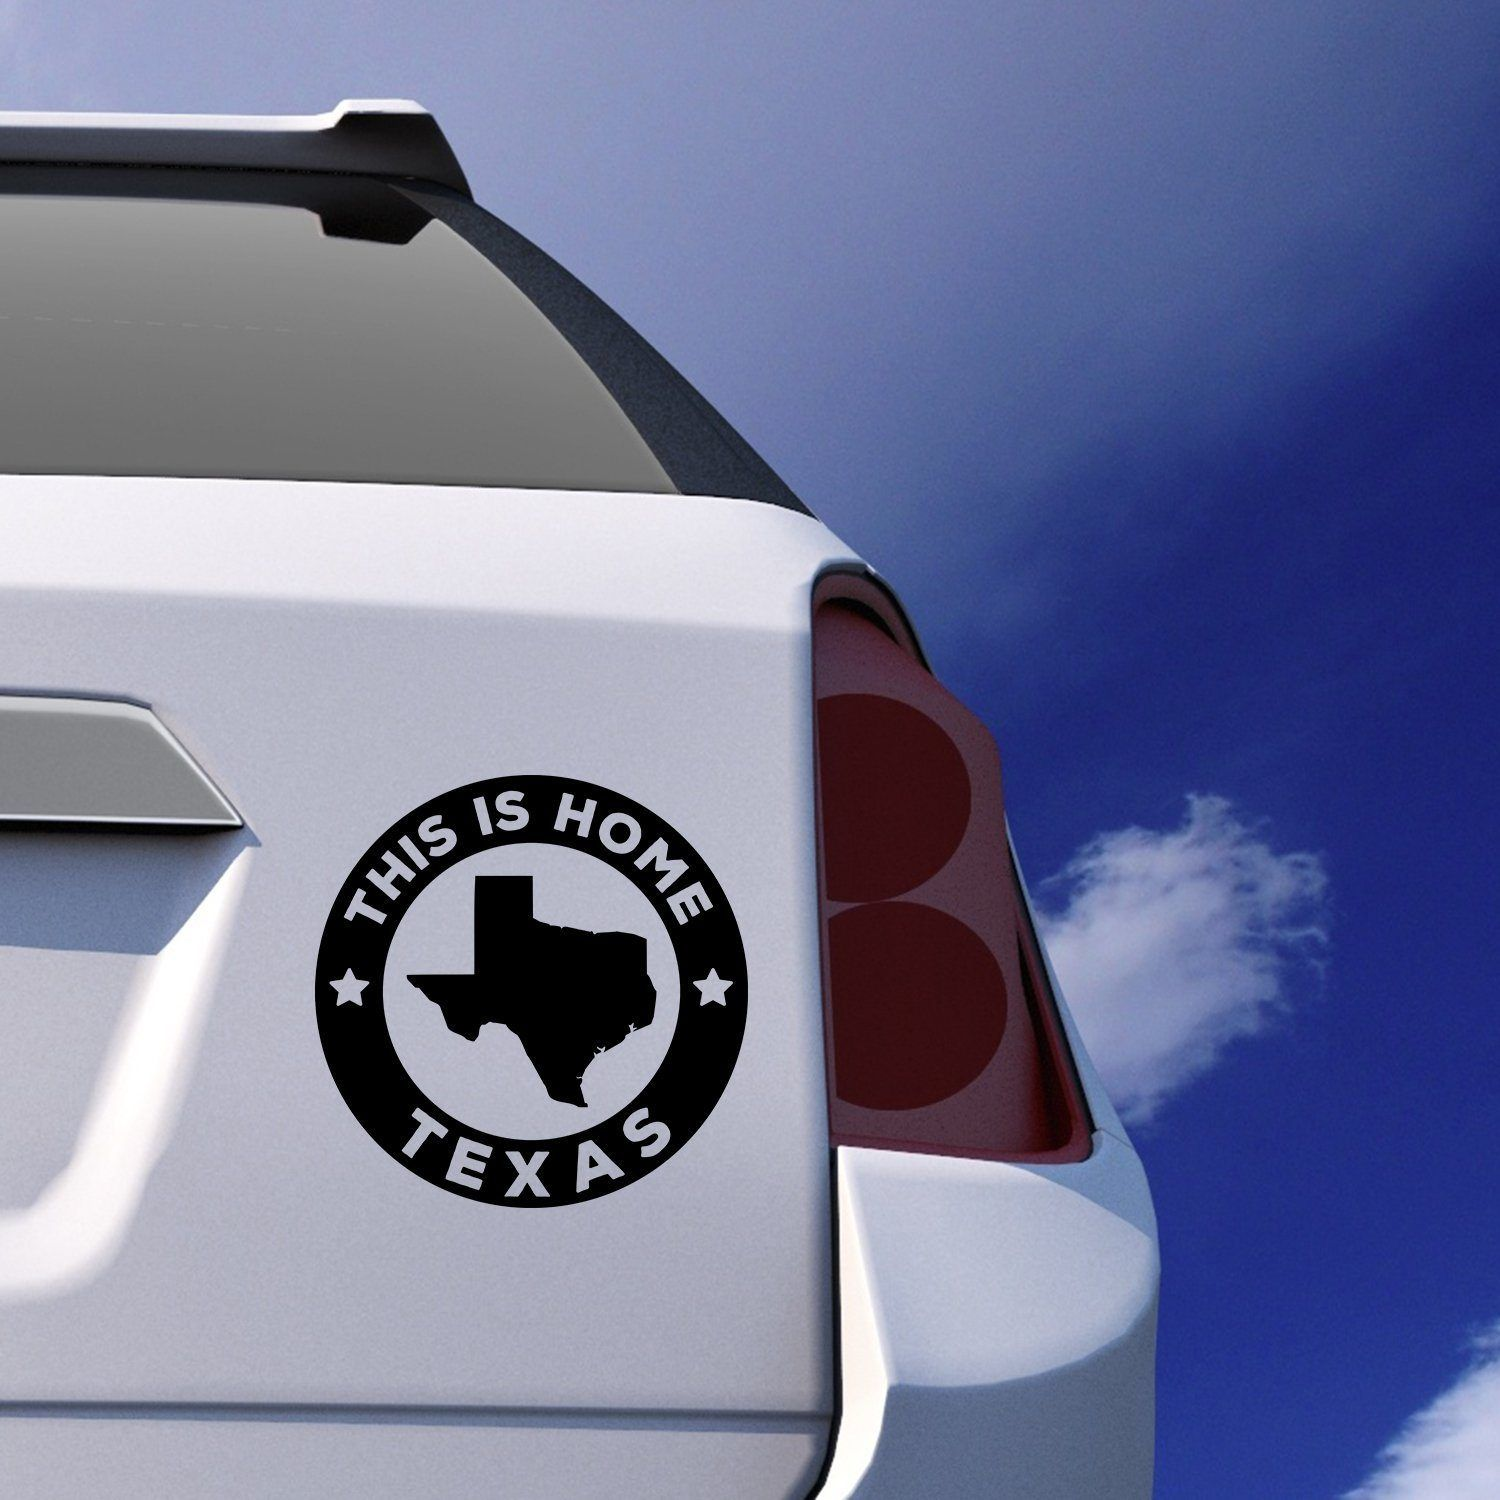 Texas this is home car sticker vinyl decal